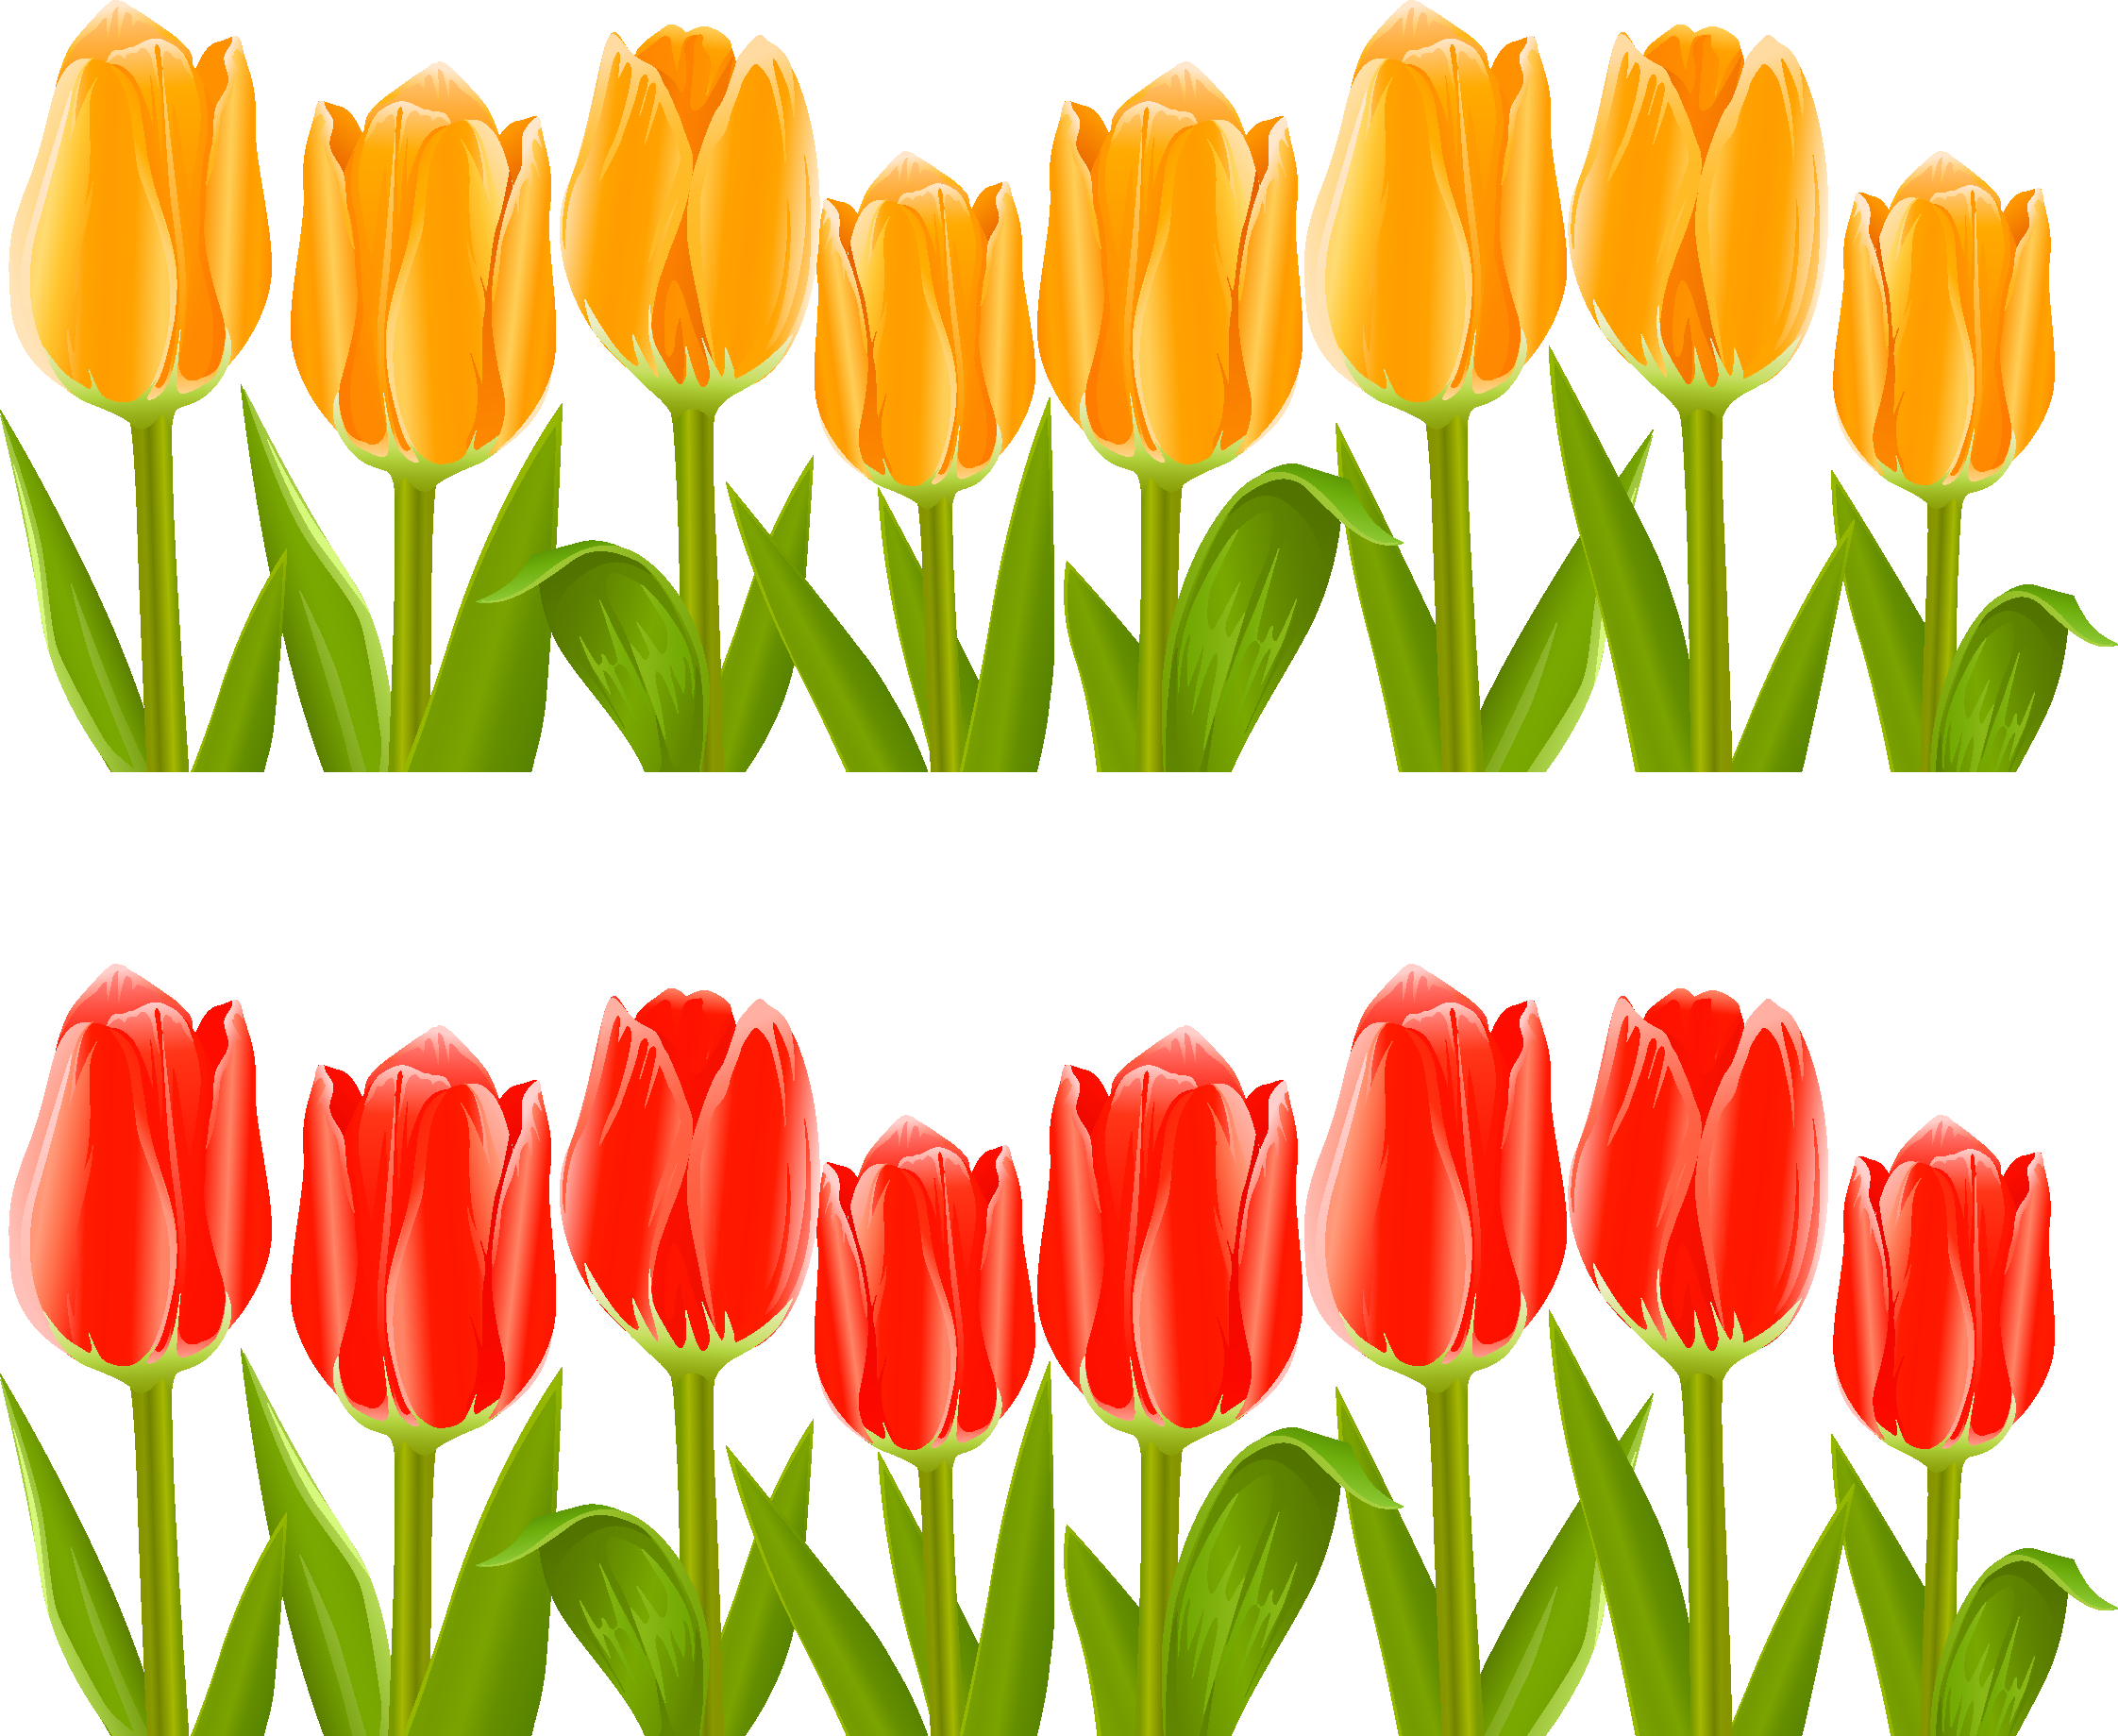 Growing flower clipart banner freeuse library Indira Gandhi Memorial Tulip Garden Flower Clip art - tulip 2244 ... banner freeuse library